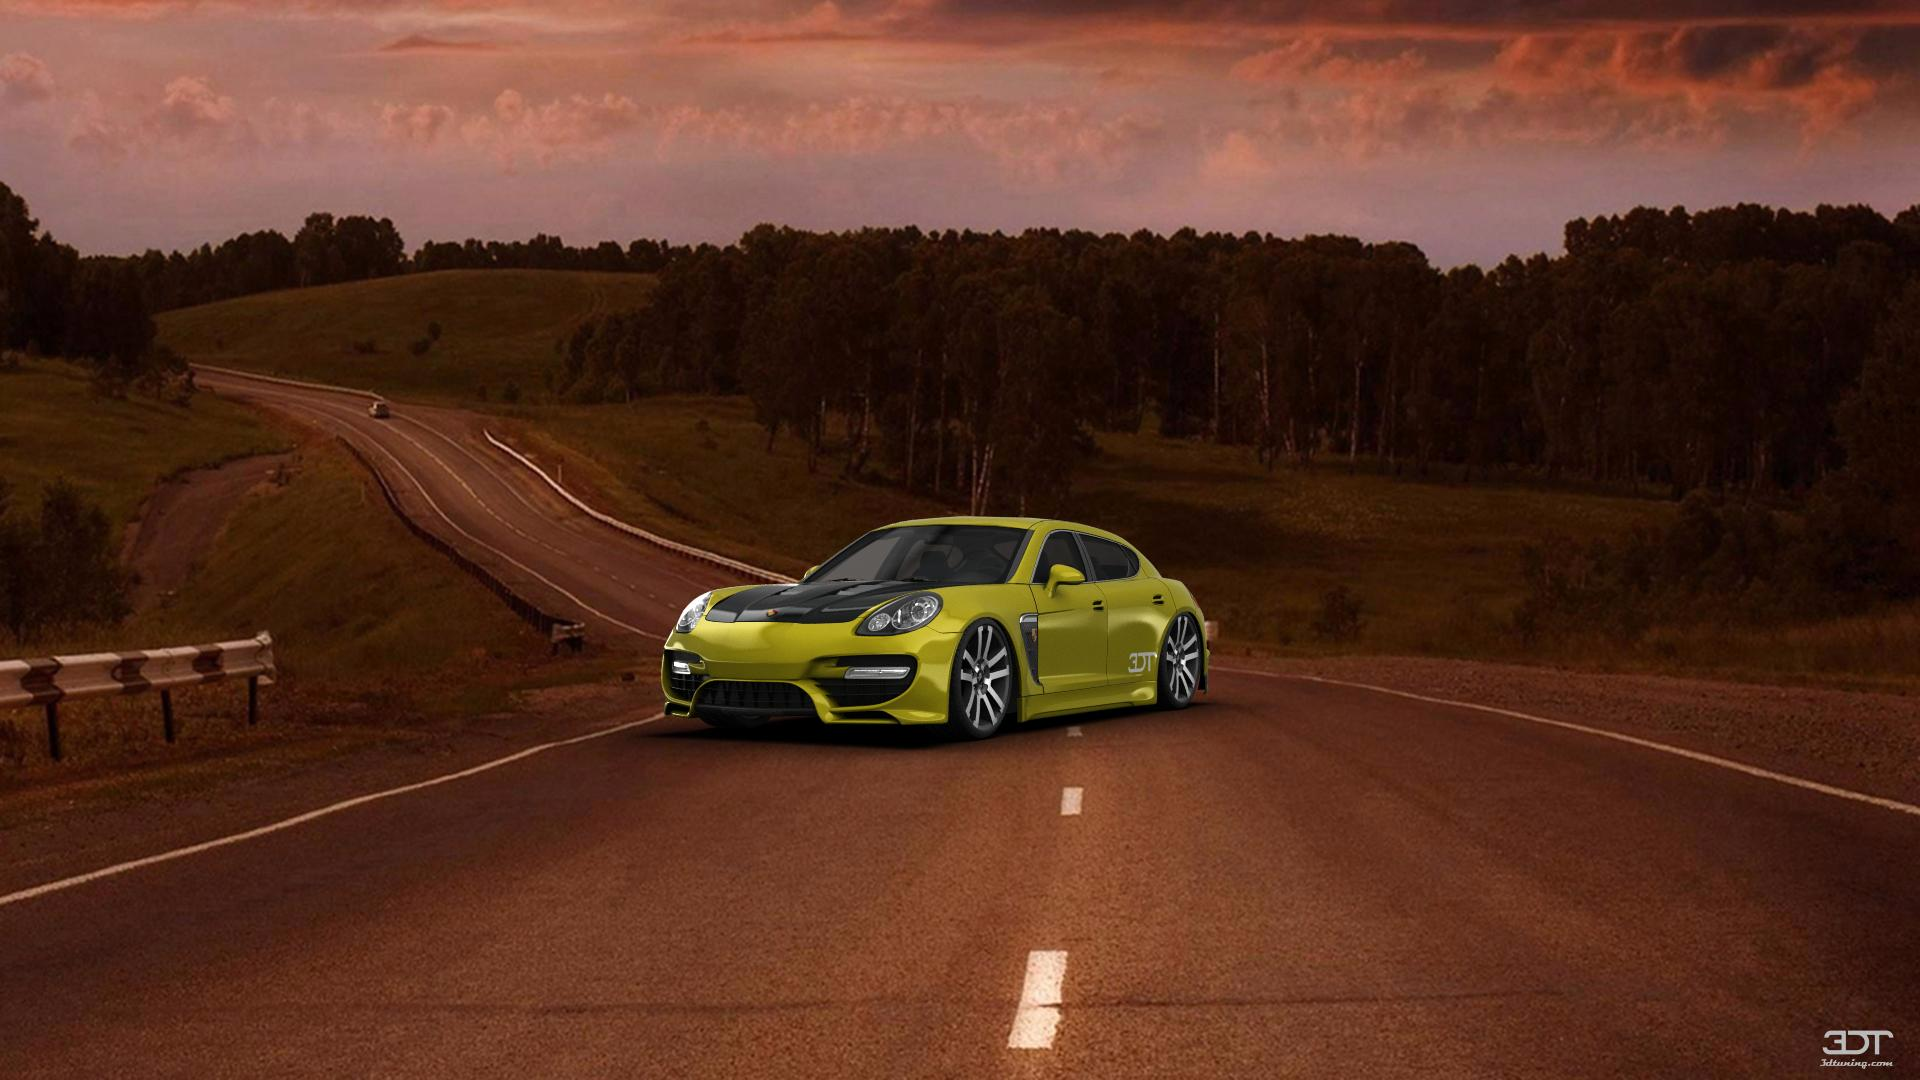 Checkout-my-tuning-Porsche-Panamera-at-3dTuning-3dtuning-tuning-wallpaper-wpc5803400